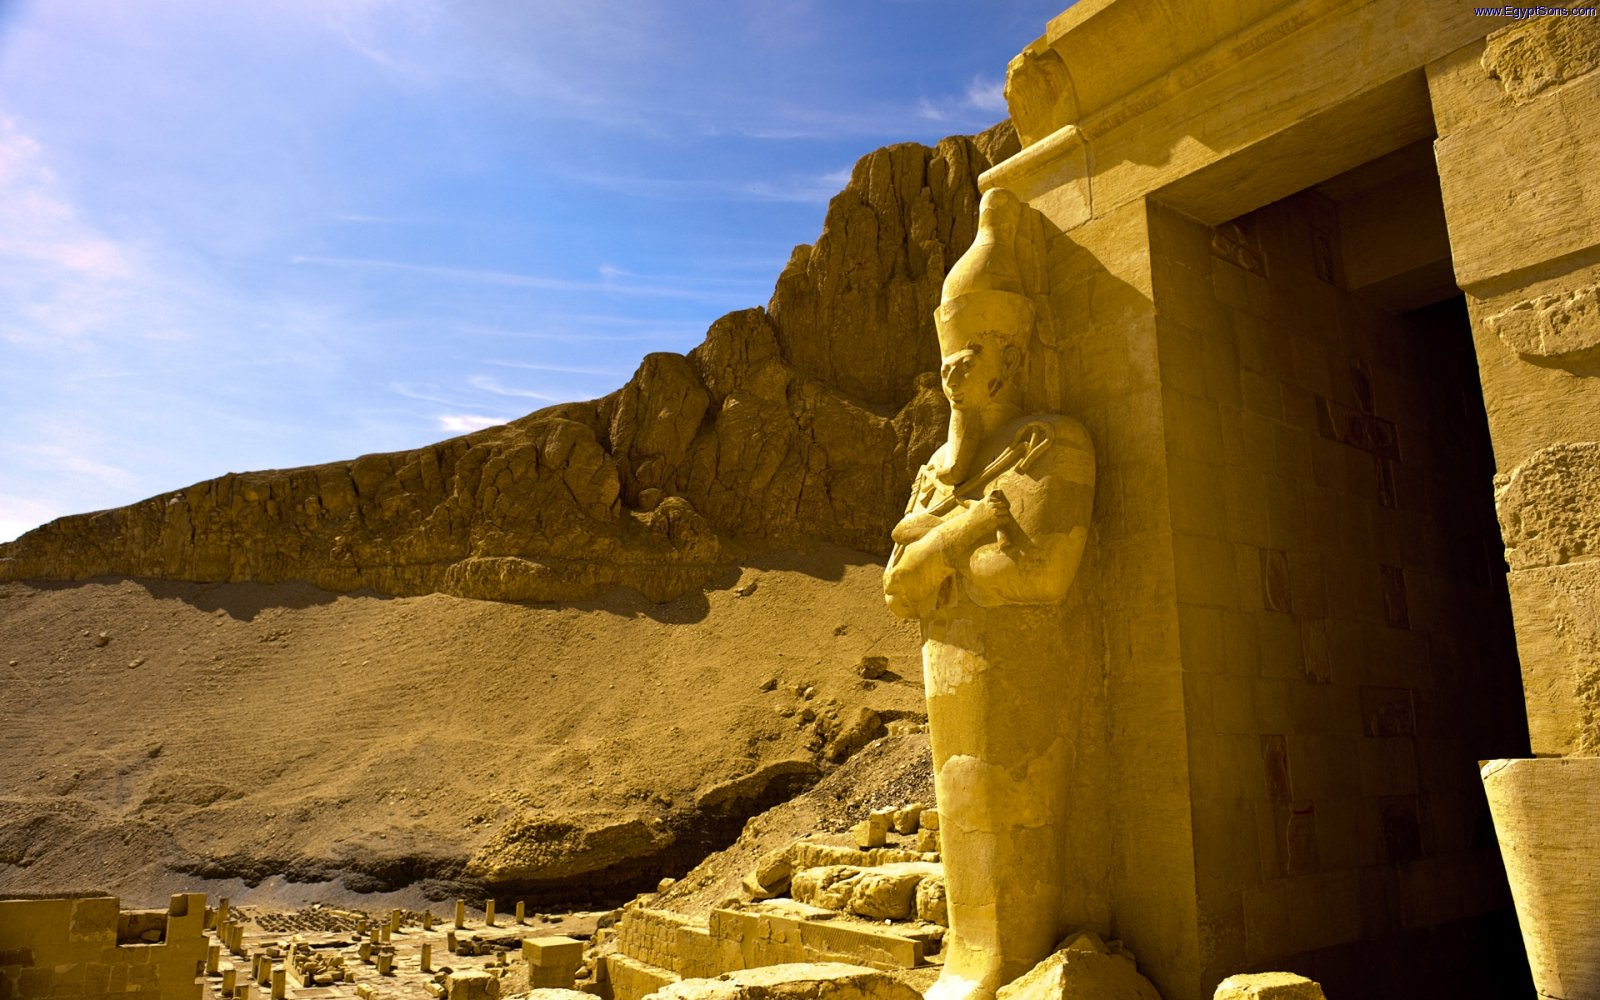 Osirian statue at Mortuary Temple of Queen Hatshepsut